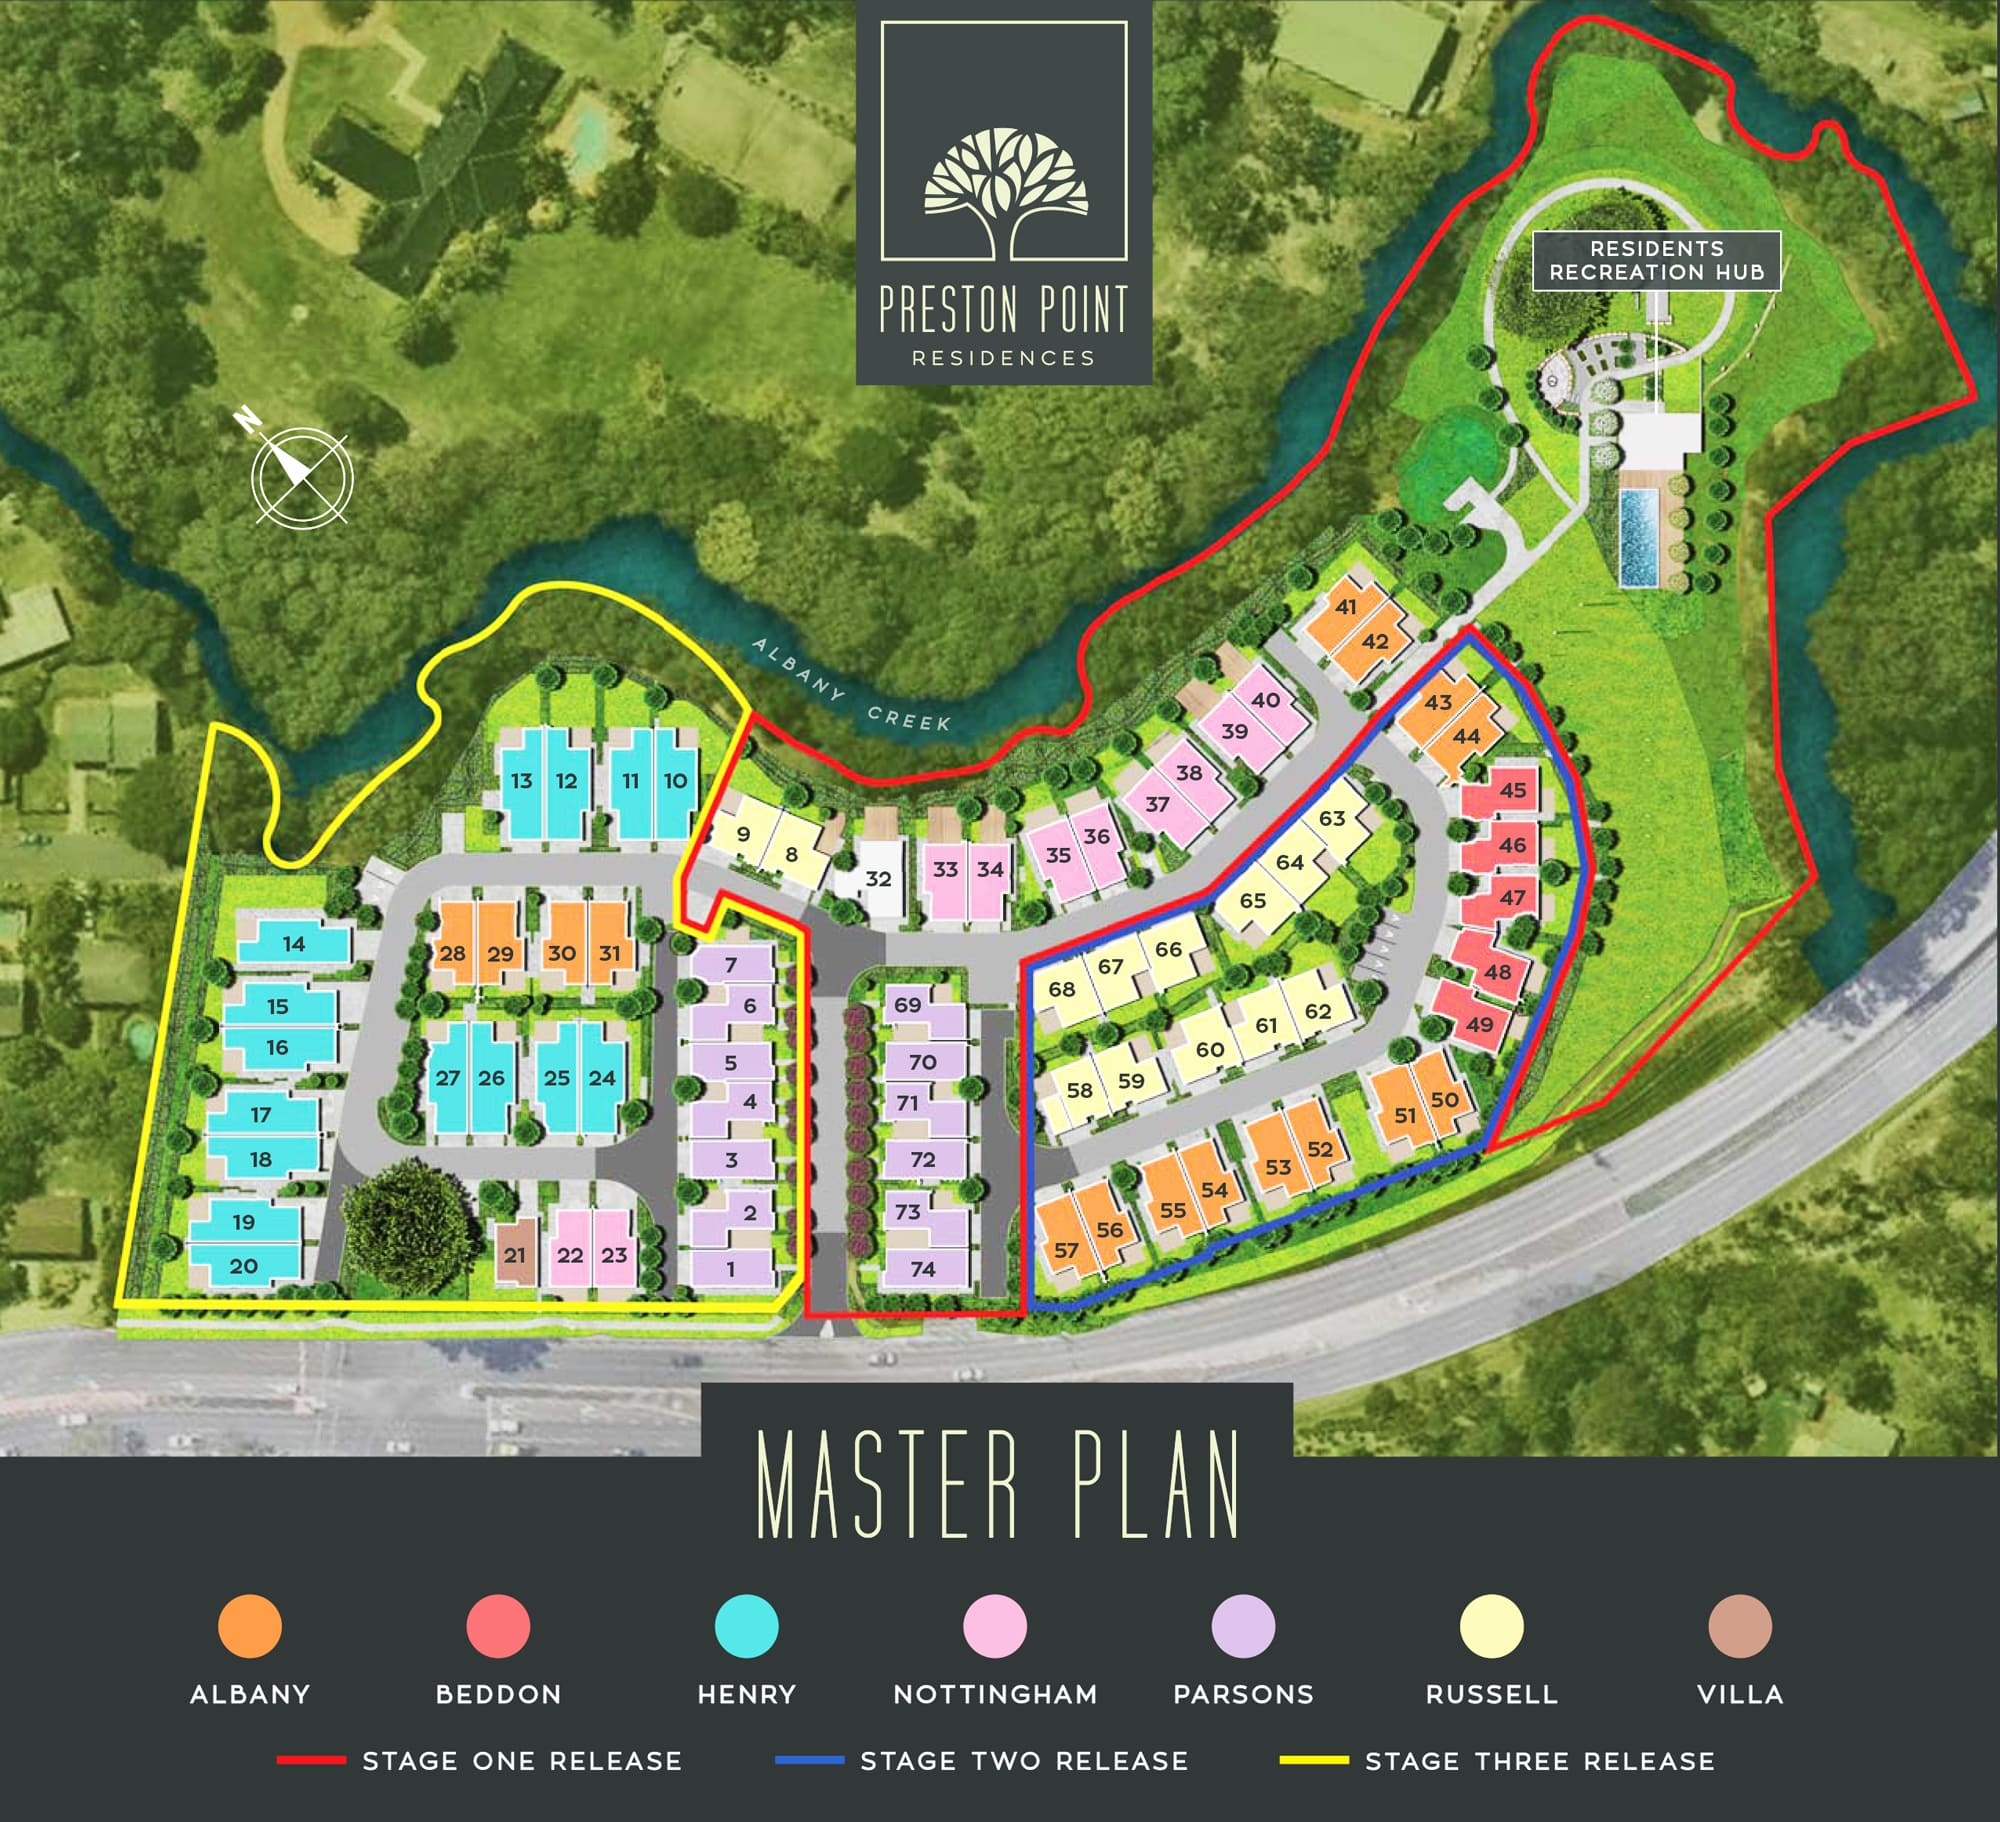 Preston Point Residences Master Plan